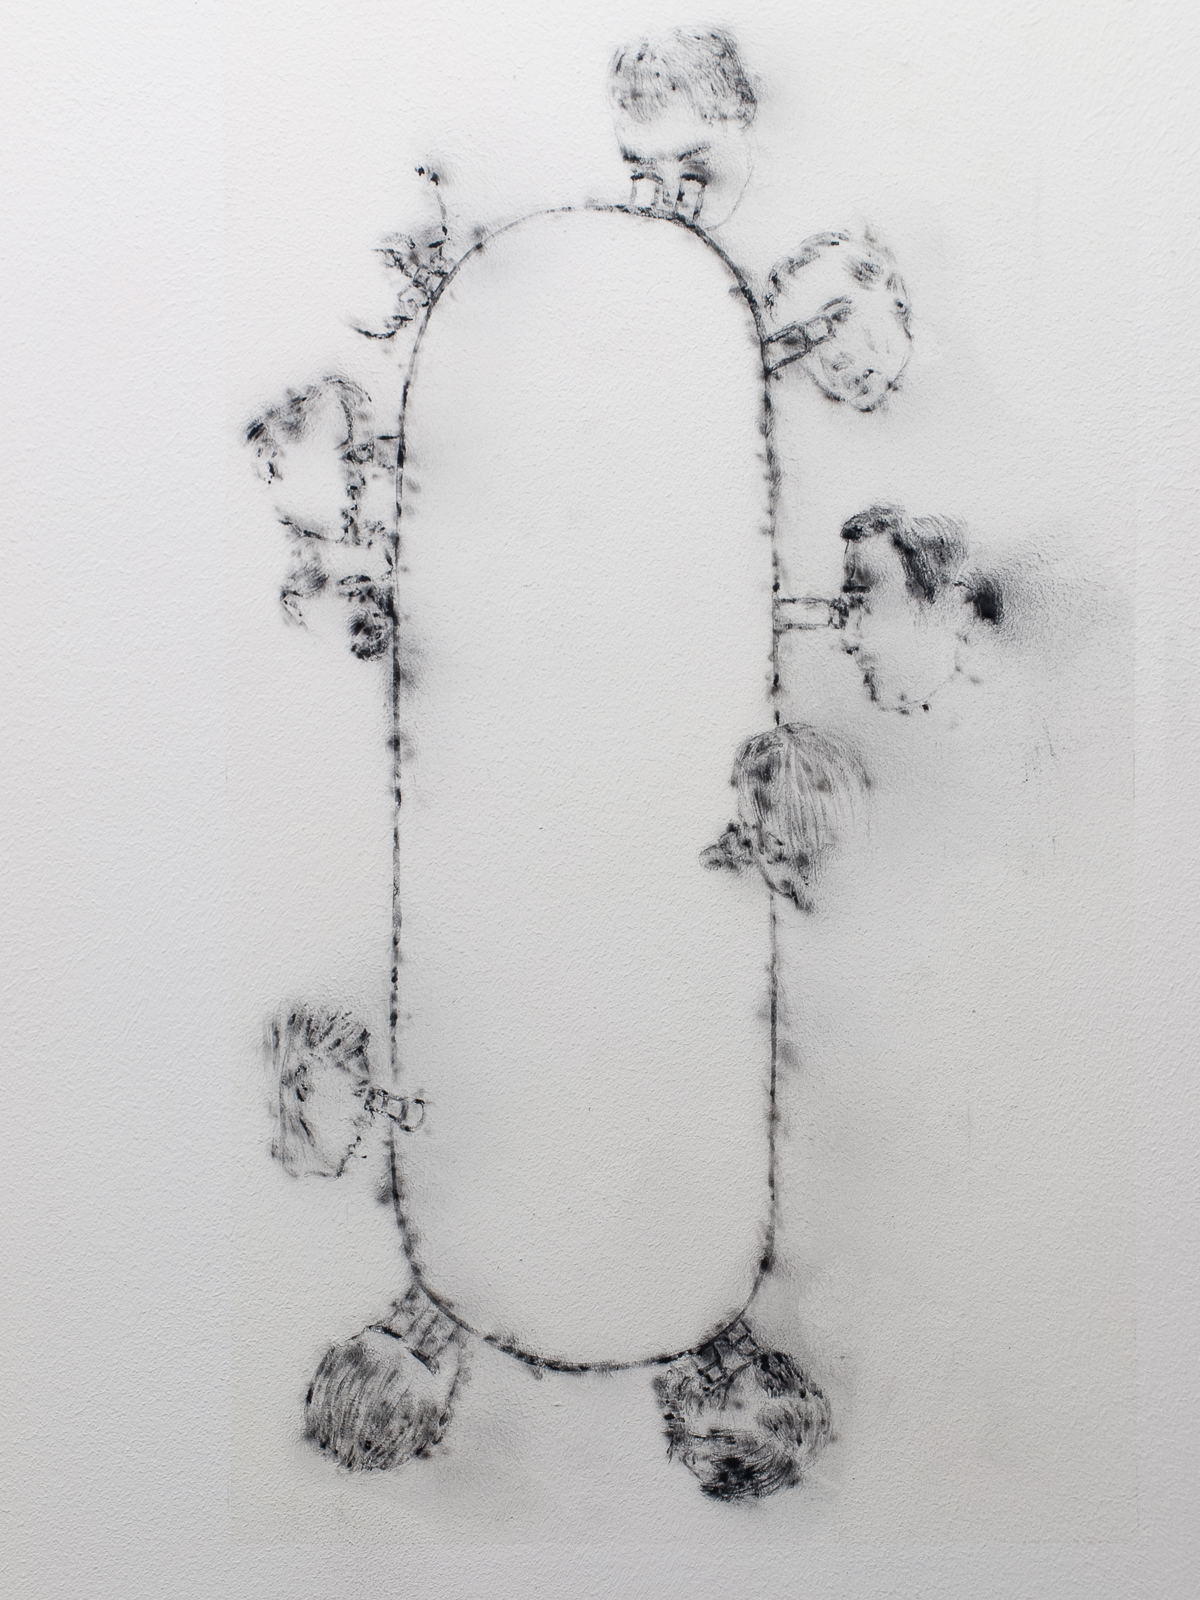 »Search«, 2012, wall drawing, onblown graphite dust, spray laquer, 60 x 36 cm